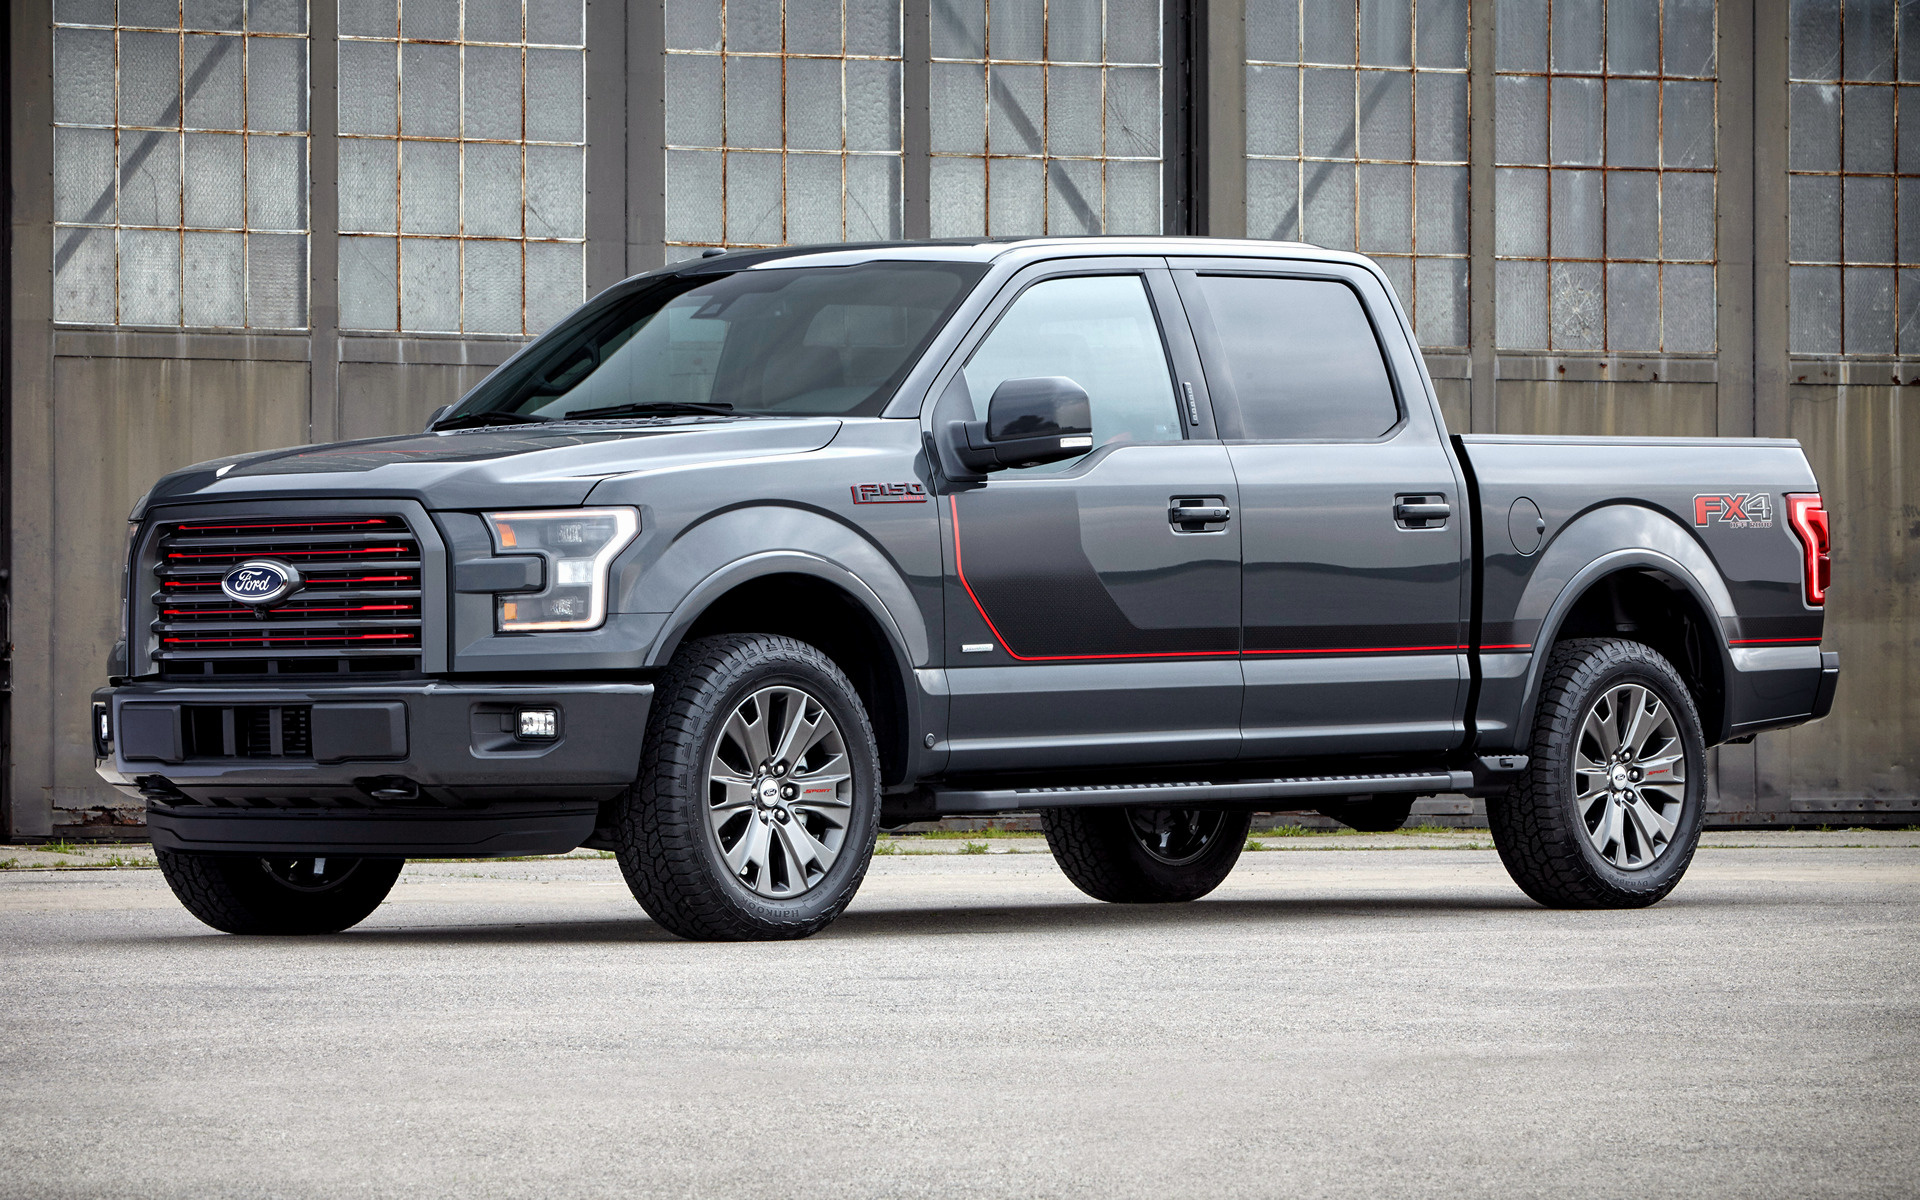 Ford F 150 Lariat FX4 SuperCrew Appearance Package 2016